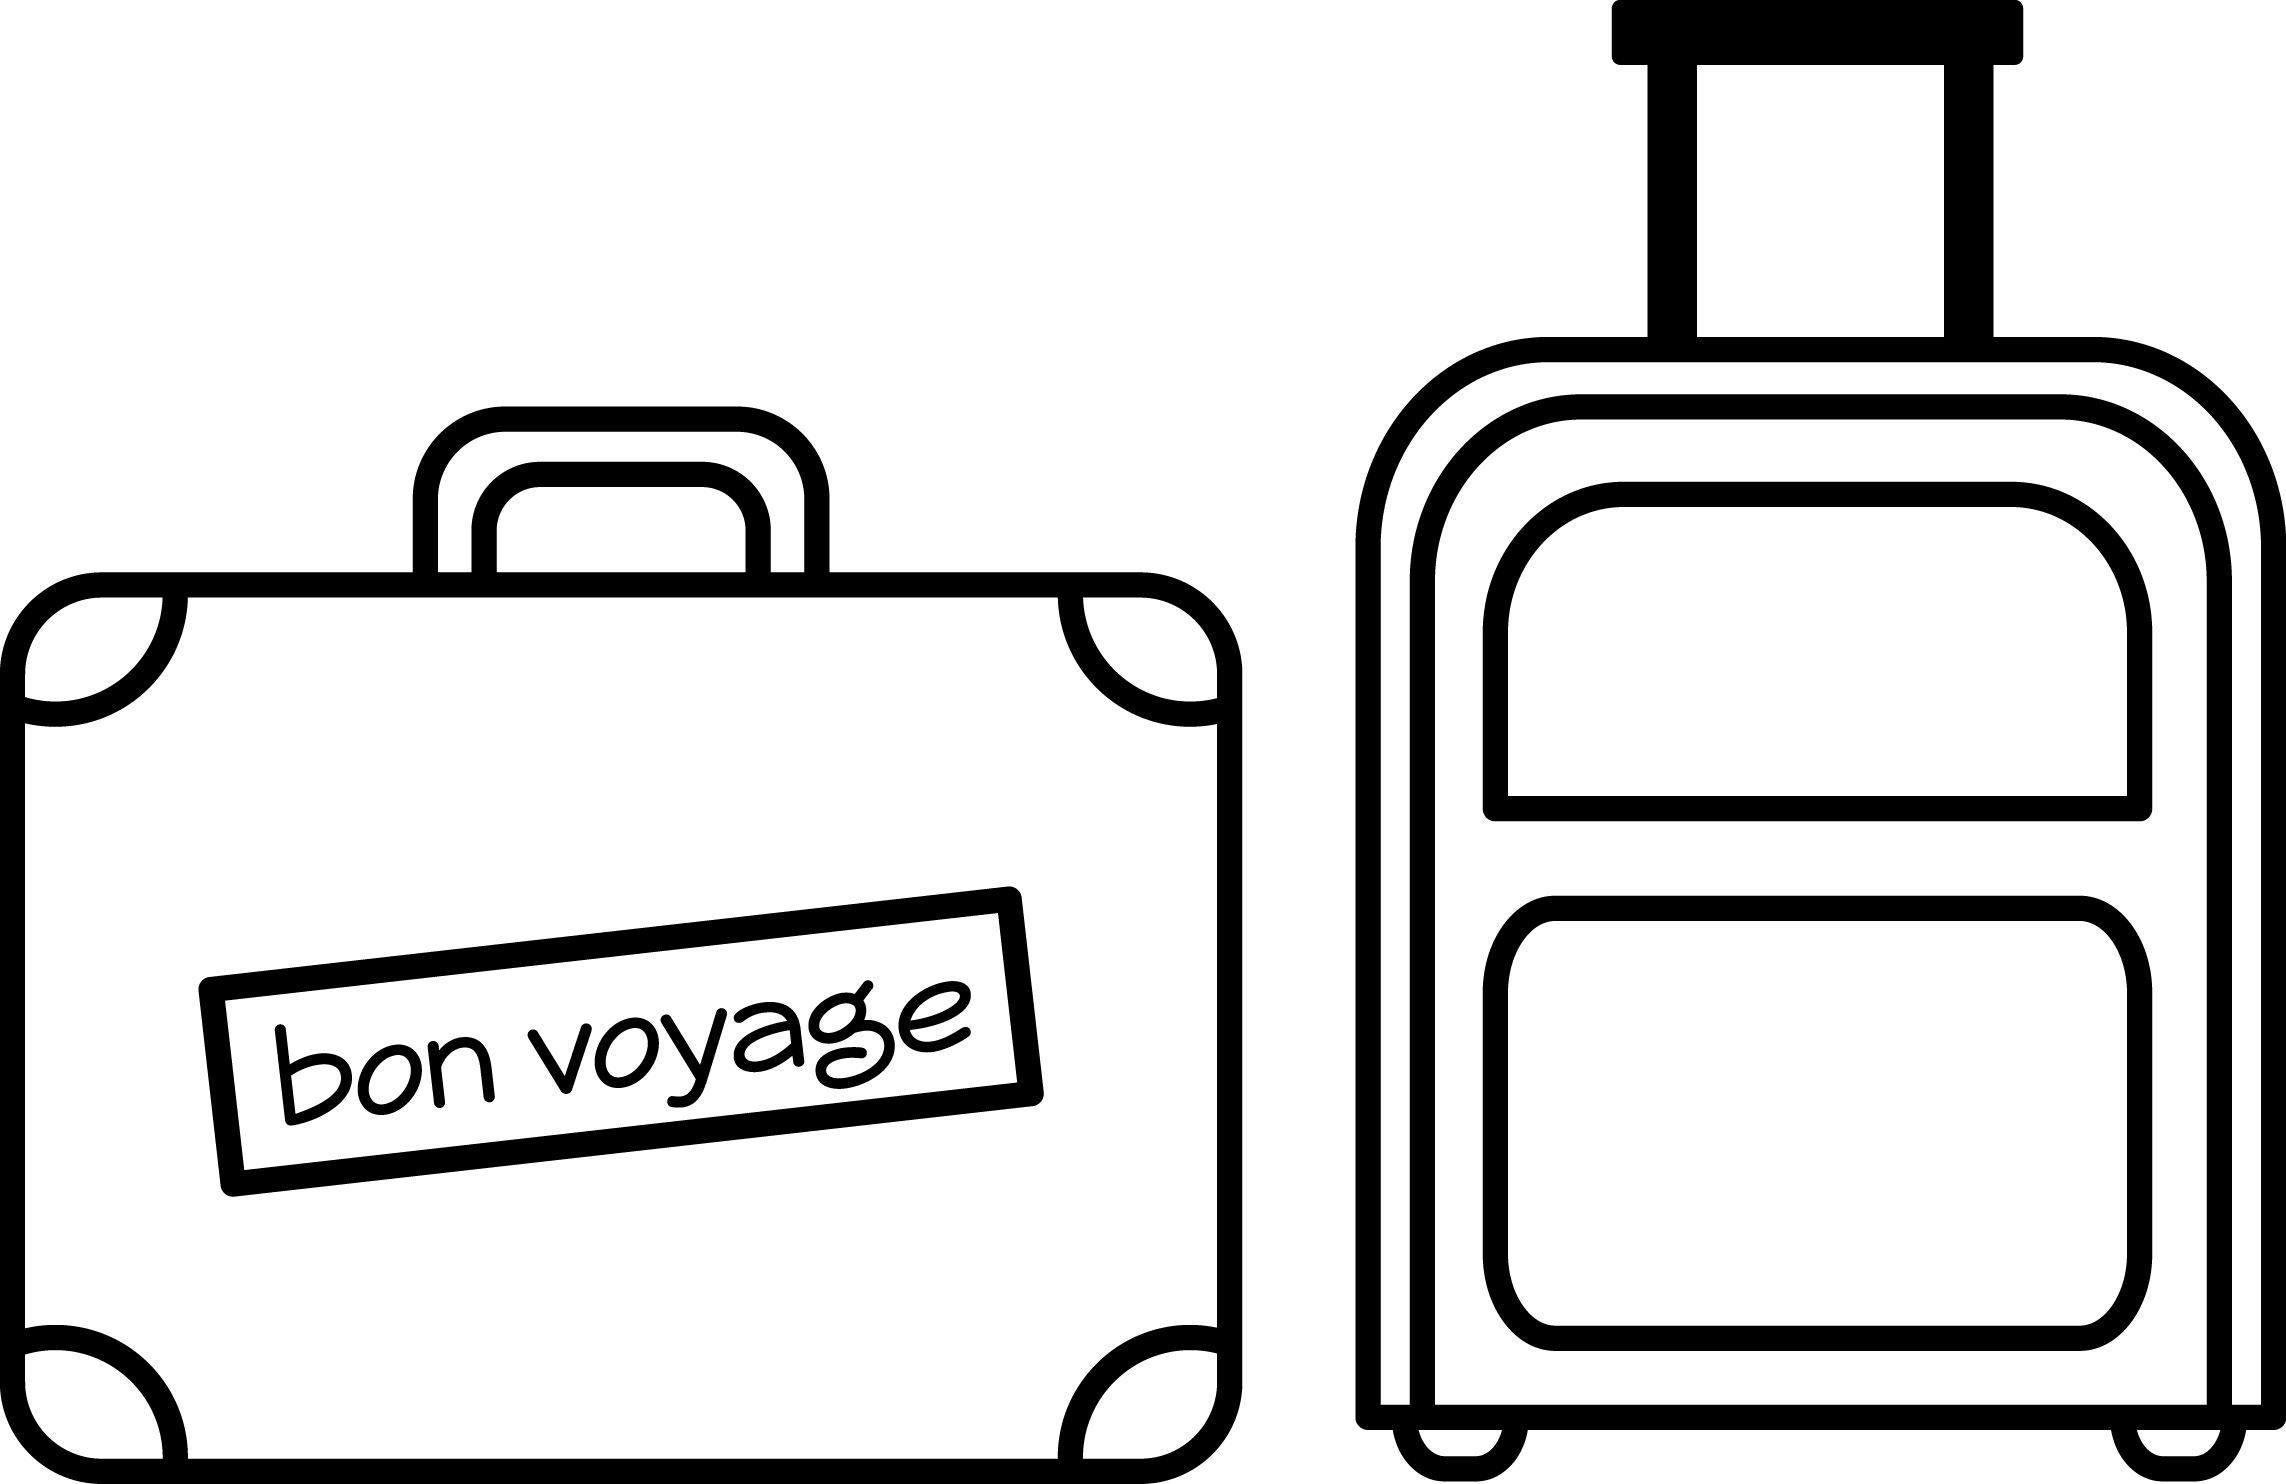 clipart royalty free download Luggage drawing. Suitcase bags